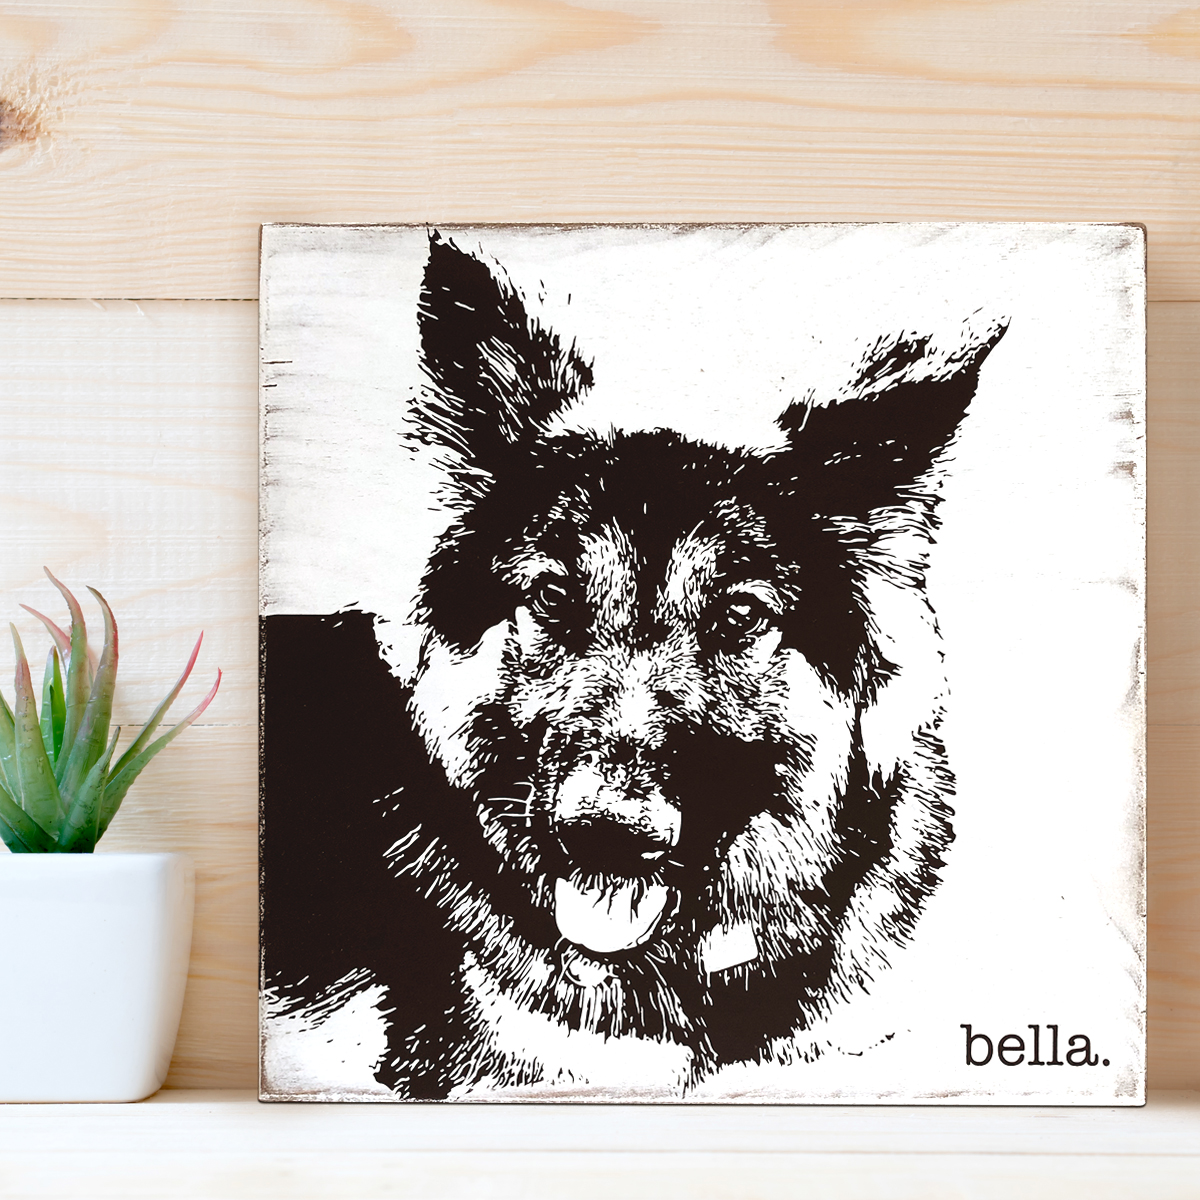 bella_portrait.jpg